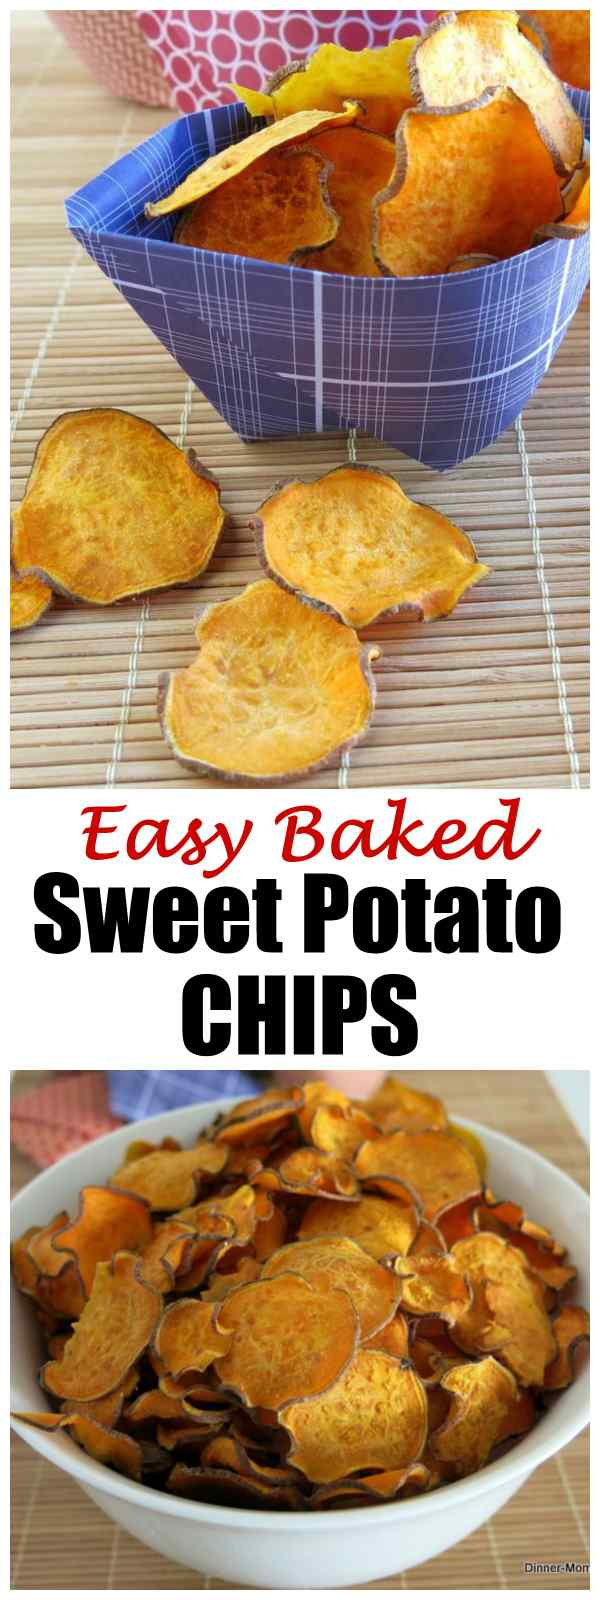 How to Make Easy Baked Sweet Potato Chips